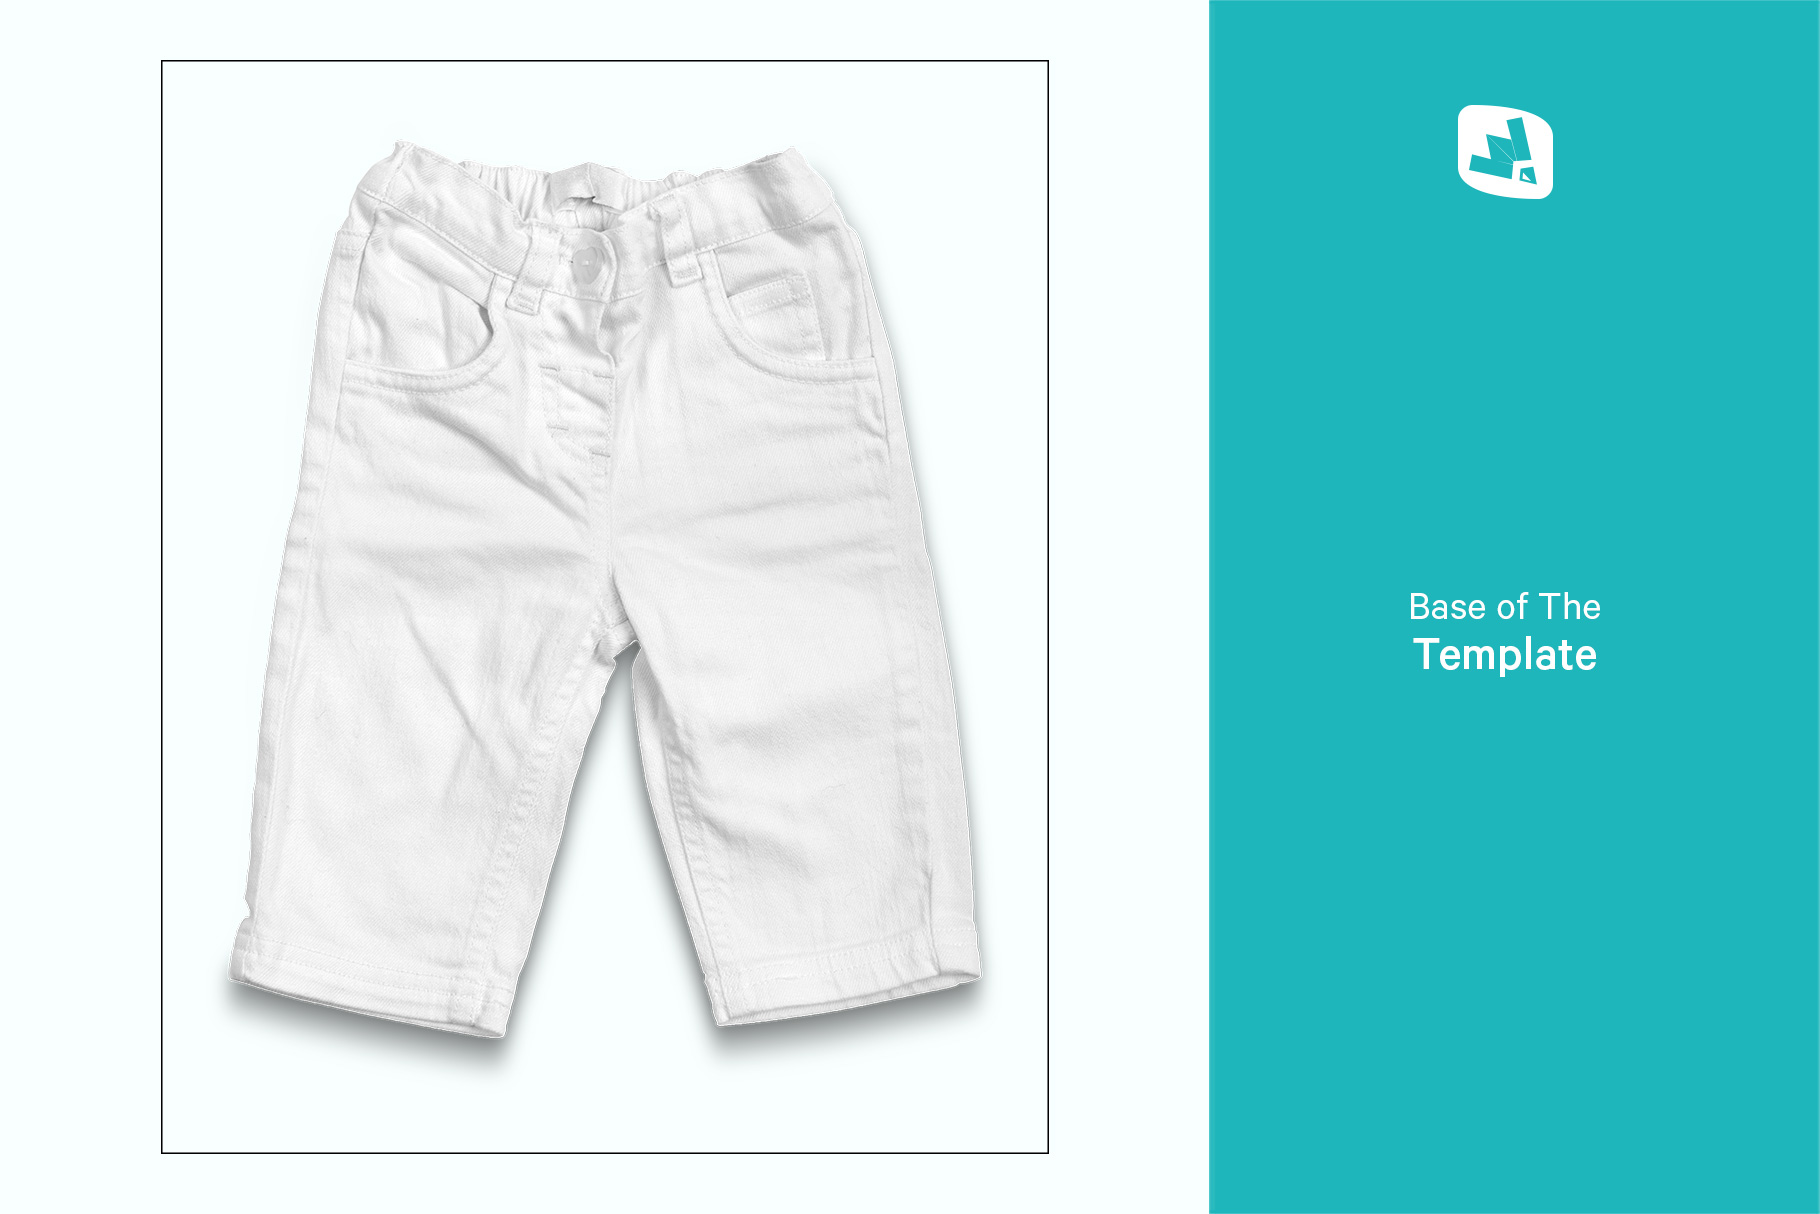 base image of the top view kid's jeans mockup